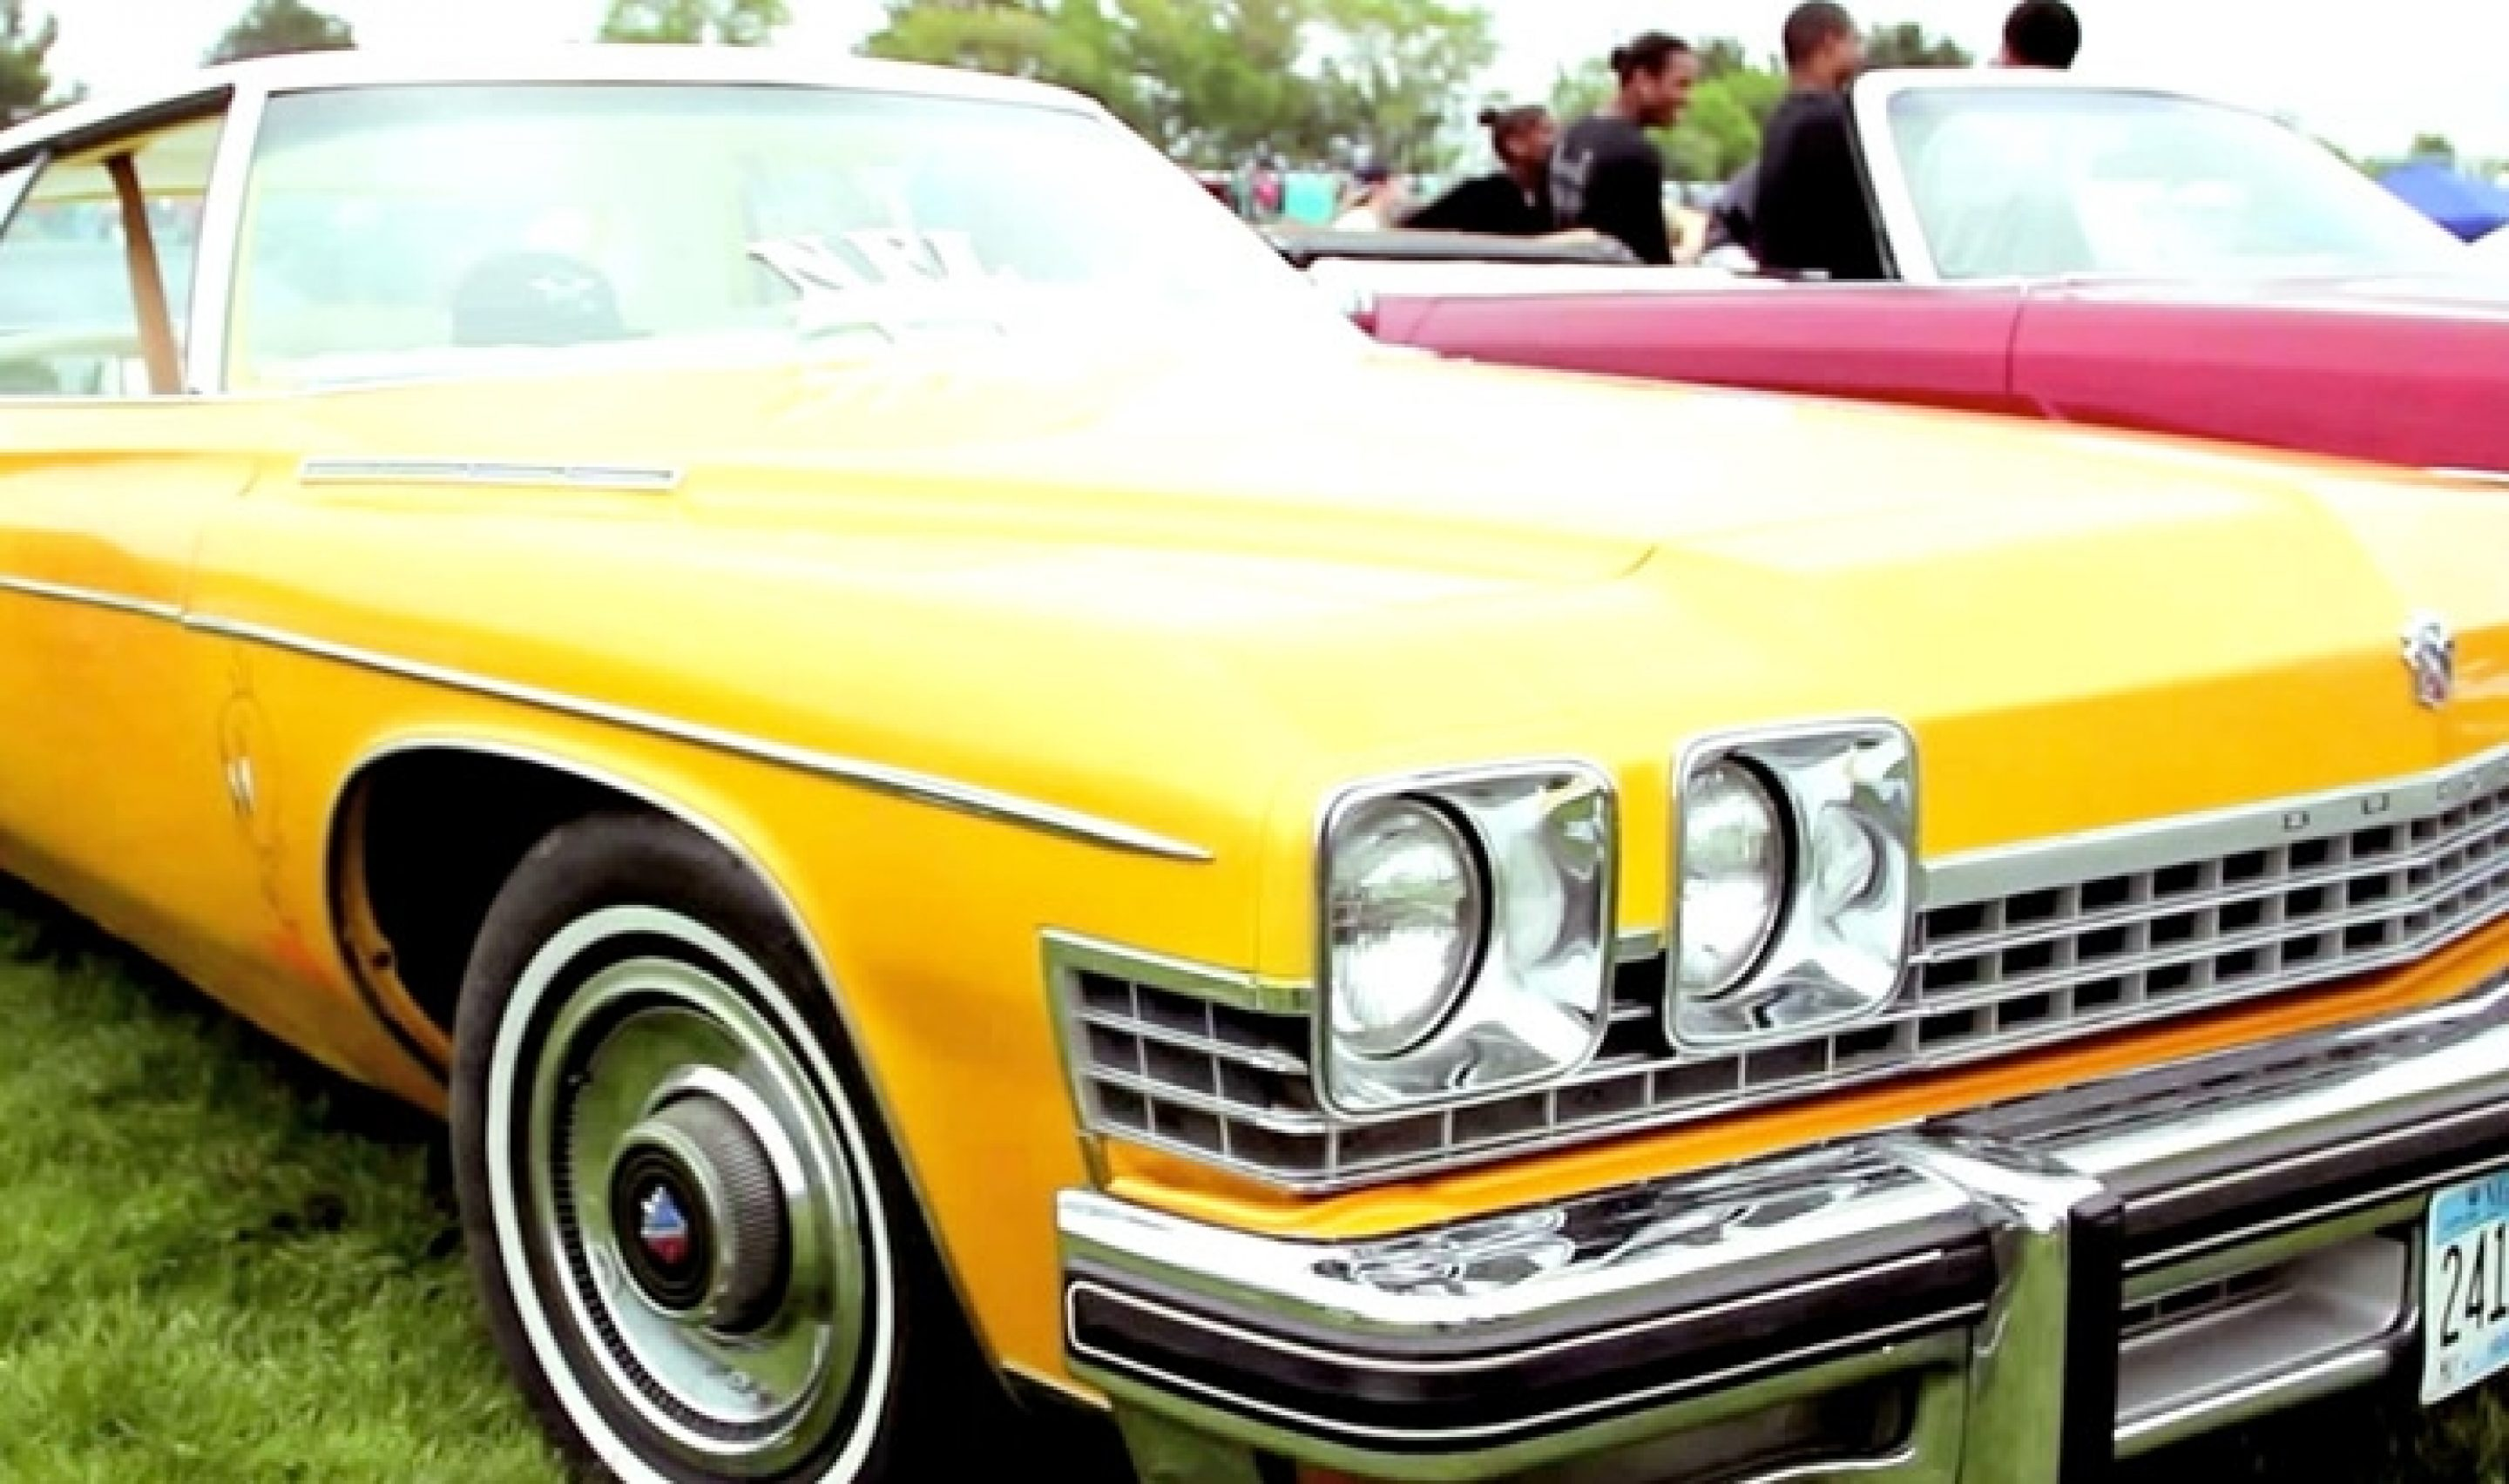 Carshow12